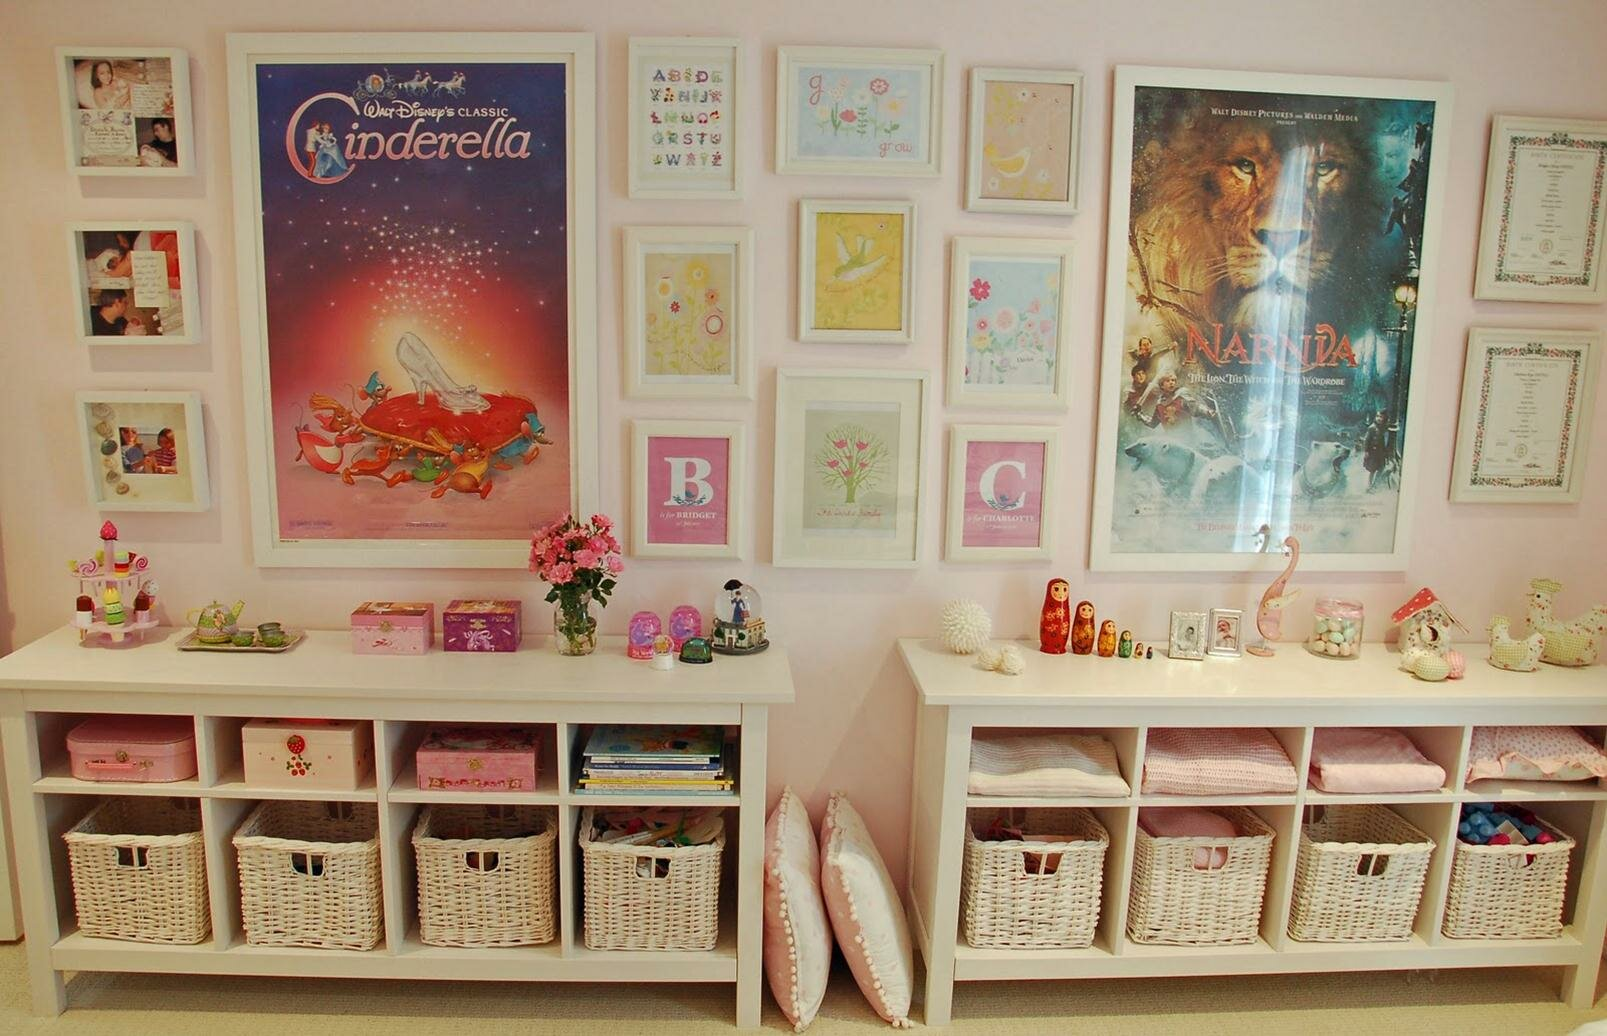 15 nice kids room decor ideas with example pics mostbeautifulthings - Kids room decoration ...